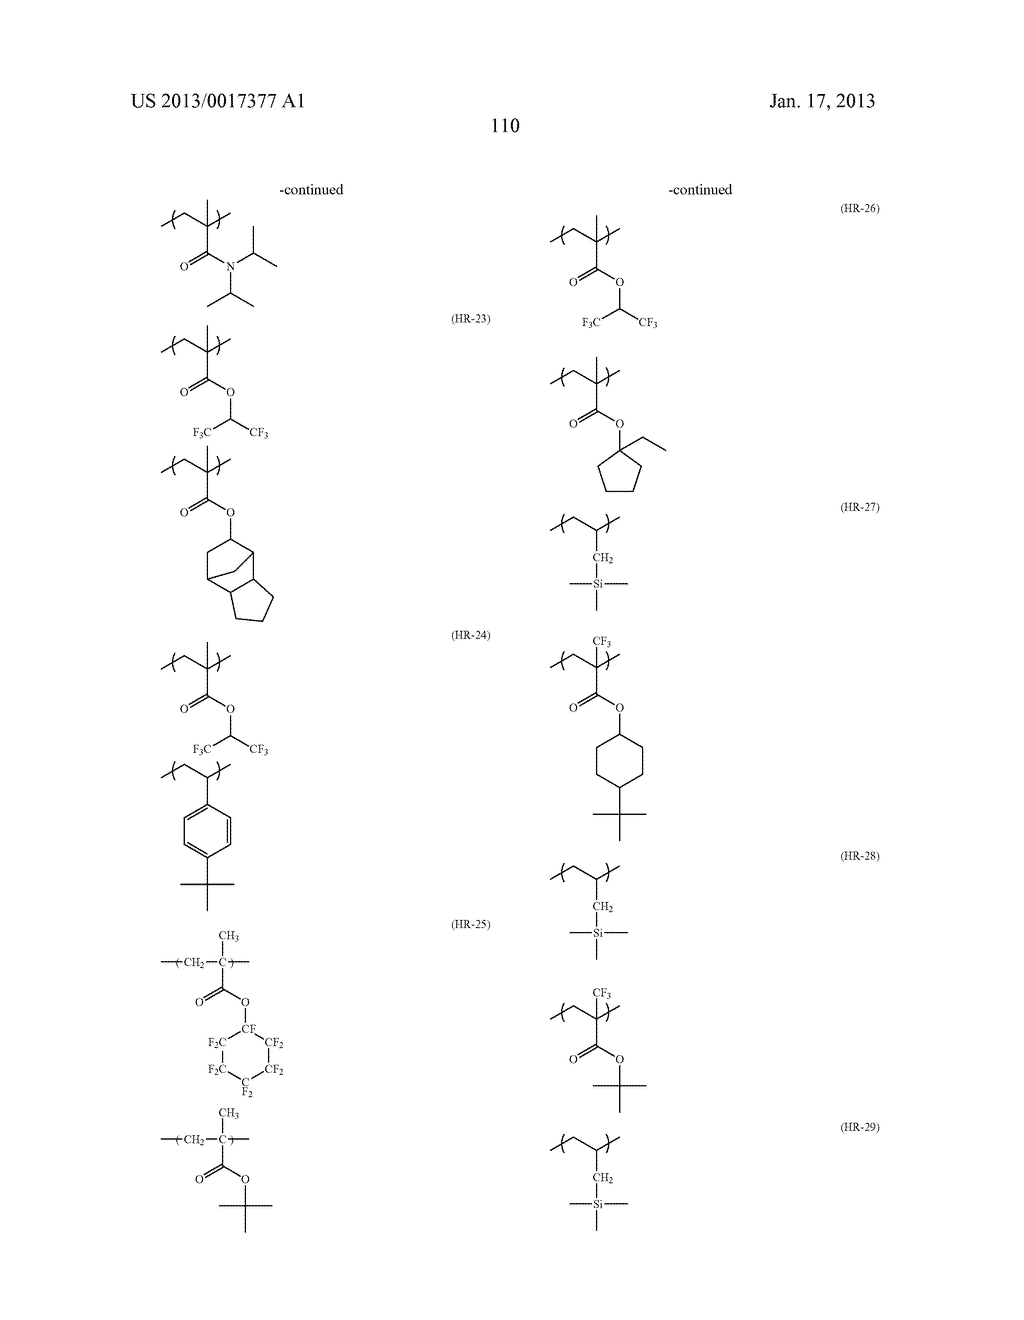 ACTINIC-RAY- OR RADIATION-SENSITIVE RESIN COMPOSITION AND METHOD OF     FORMING PATTERN USING THE SAMEAANM Kataoka; ShoheiAACI ShizuokaAACO JPAAGP Kataoka; Shohei Shizuoka JPAANM Iwato; KaoruAACI ShizuokaAACO JPAAGP Iwato; Kaoru Shizuoka JPAANM Kamimura; SouAACI ShizuokaAACO JPAAGP Kamimura; Sou Shizuoka JPAANM Tsuchihashi; ToruAACI ShizuokaAACO JPAAGP Tsuchihashi; Toru Shizuoka JPAANM Enomoto; YuichiroAACI ShizuokaAACO JPAAGP Enomoto; Yuichiro Shizuoka JPAANM Fujii; KanaAACI ShizuokaAACO JPAAGP Fujii; Kana Shizuoka JPAANM Mizutani; KazuyoshiAACI ShizuokaAACO JPAAGP Mizutani; Kazuyoshi Shizuoka JPAANM Tarutani; ShinjiAACI ShizuokaAACO JPAAGP Tarutani; Shinji Shizuoka JPAANM Kato; KeitaAACI ShizuokaAACO JPAAGP Kato; Keita Shizuoka JP - diagram, schematic, and image 111